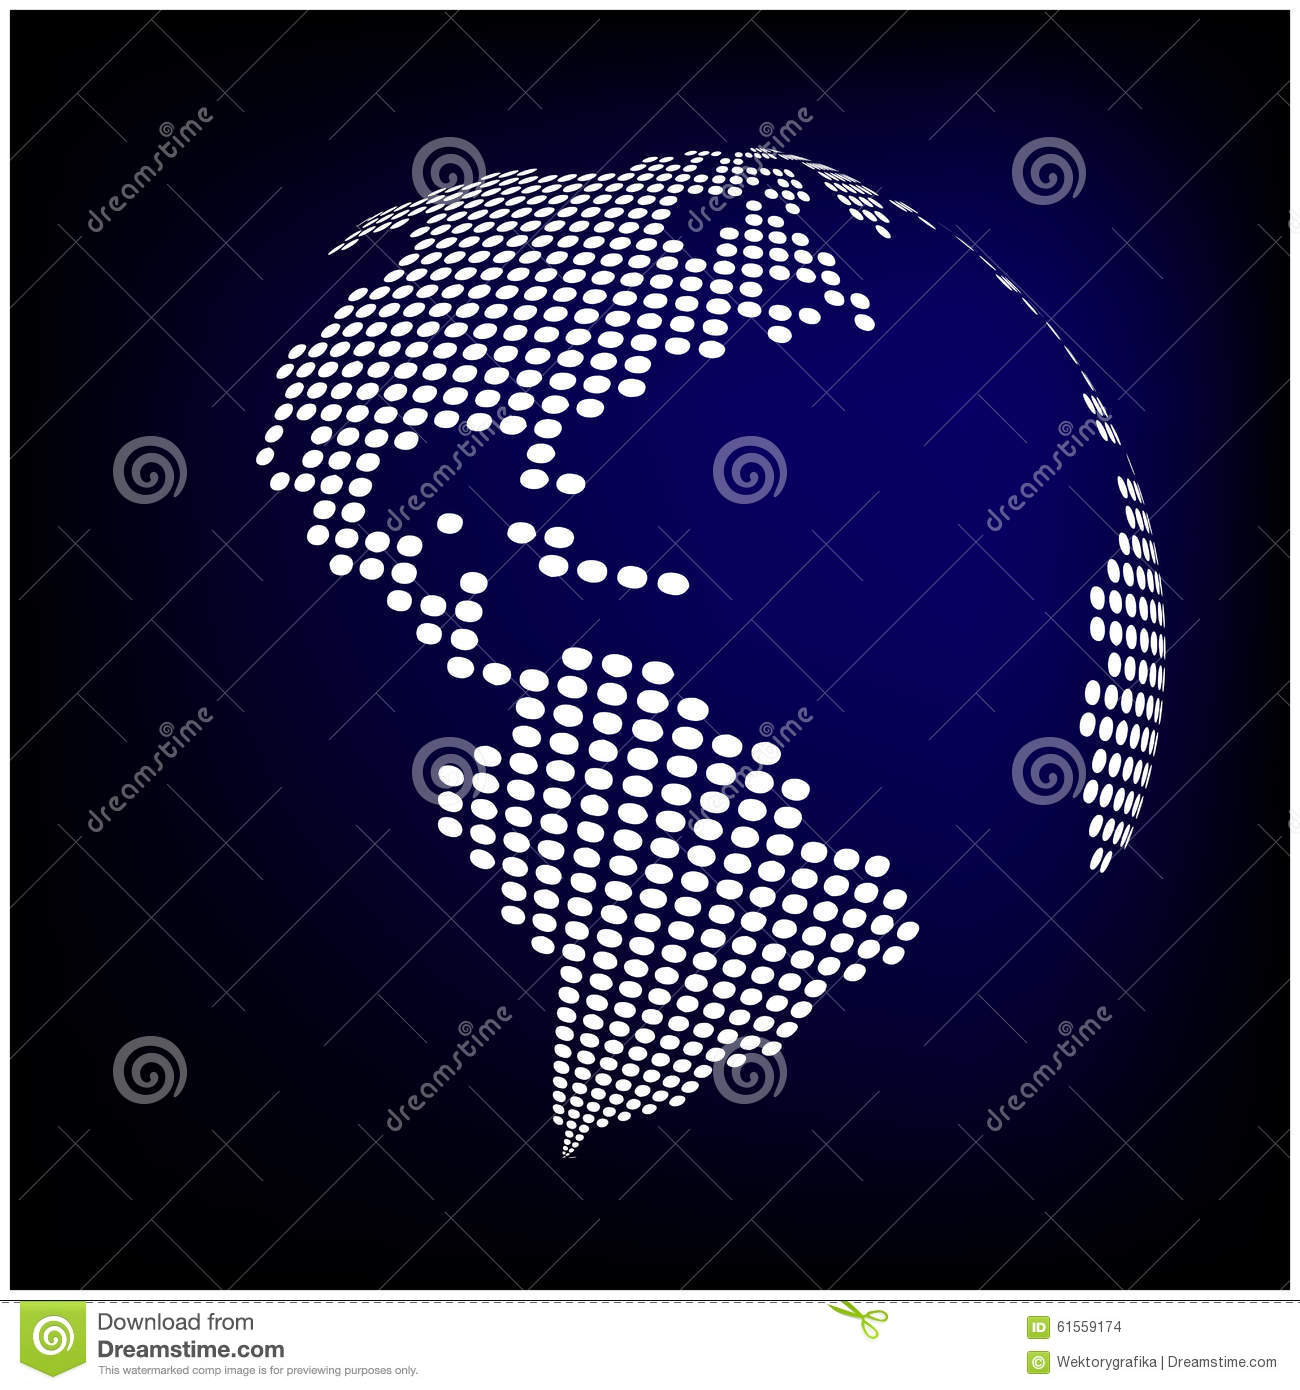 Vector abstract digital globe world map background stock vector globe earth world map abstract dotted vector background blue wallpaper illustration stock images gumiabroncs Image collections